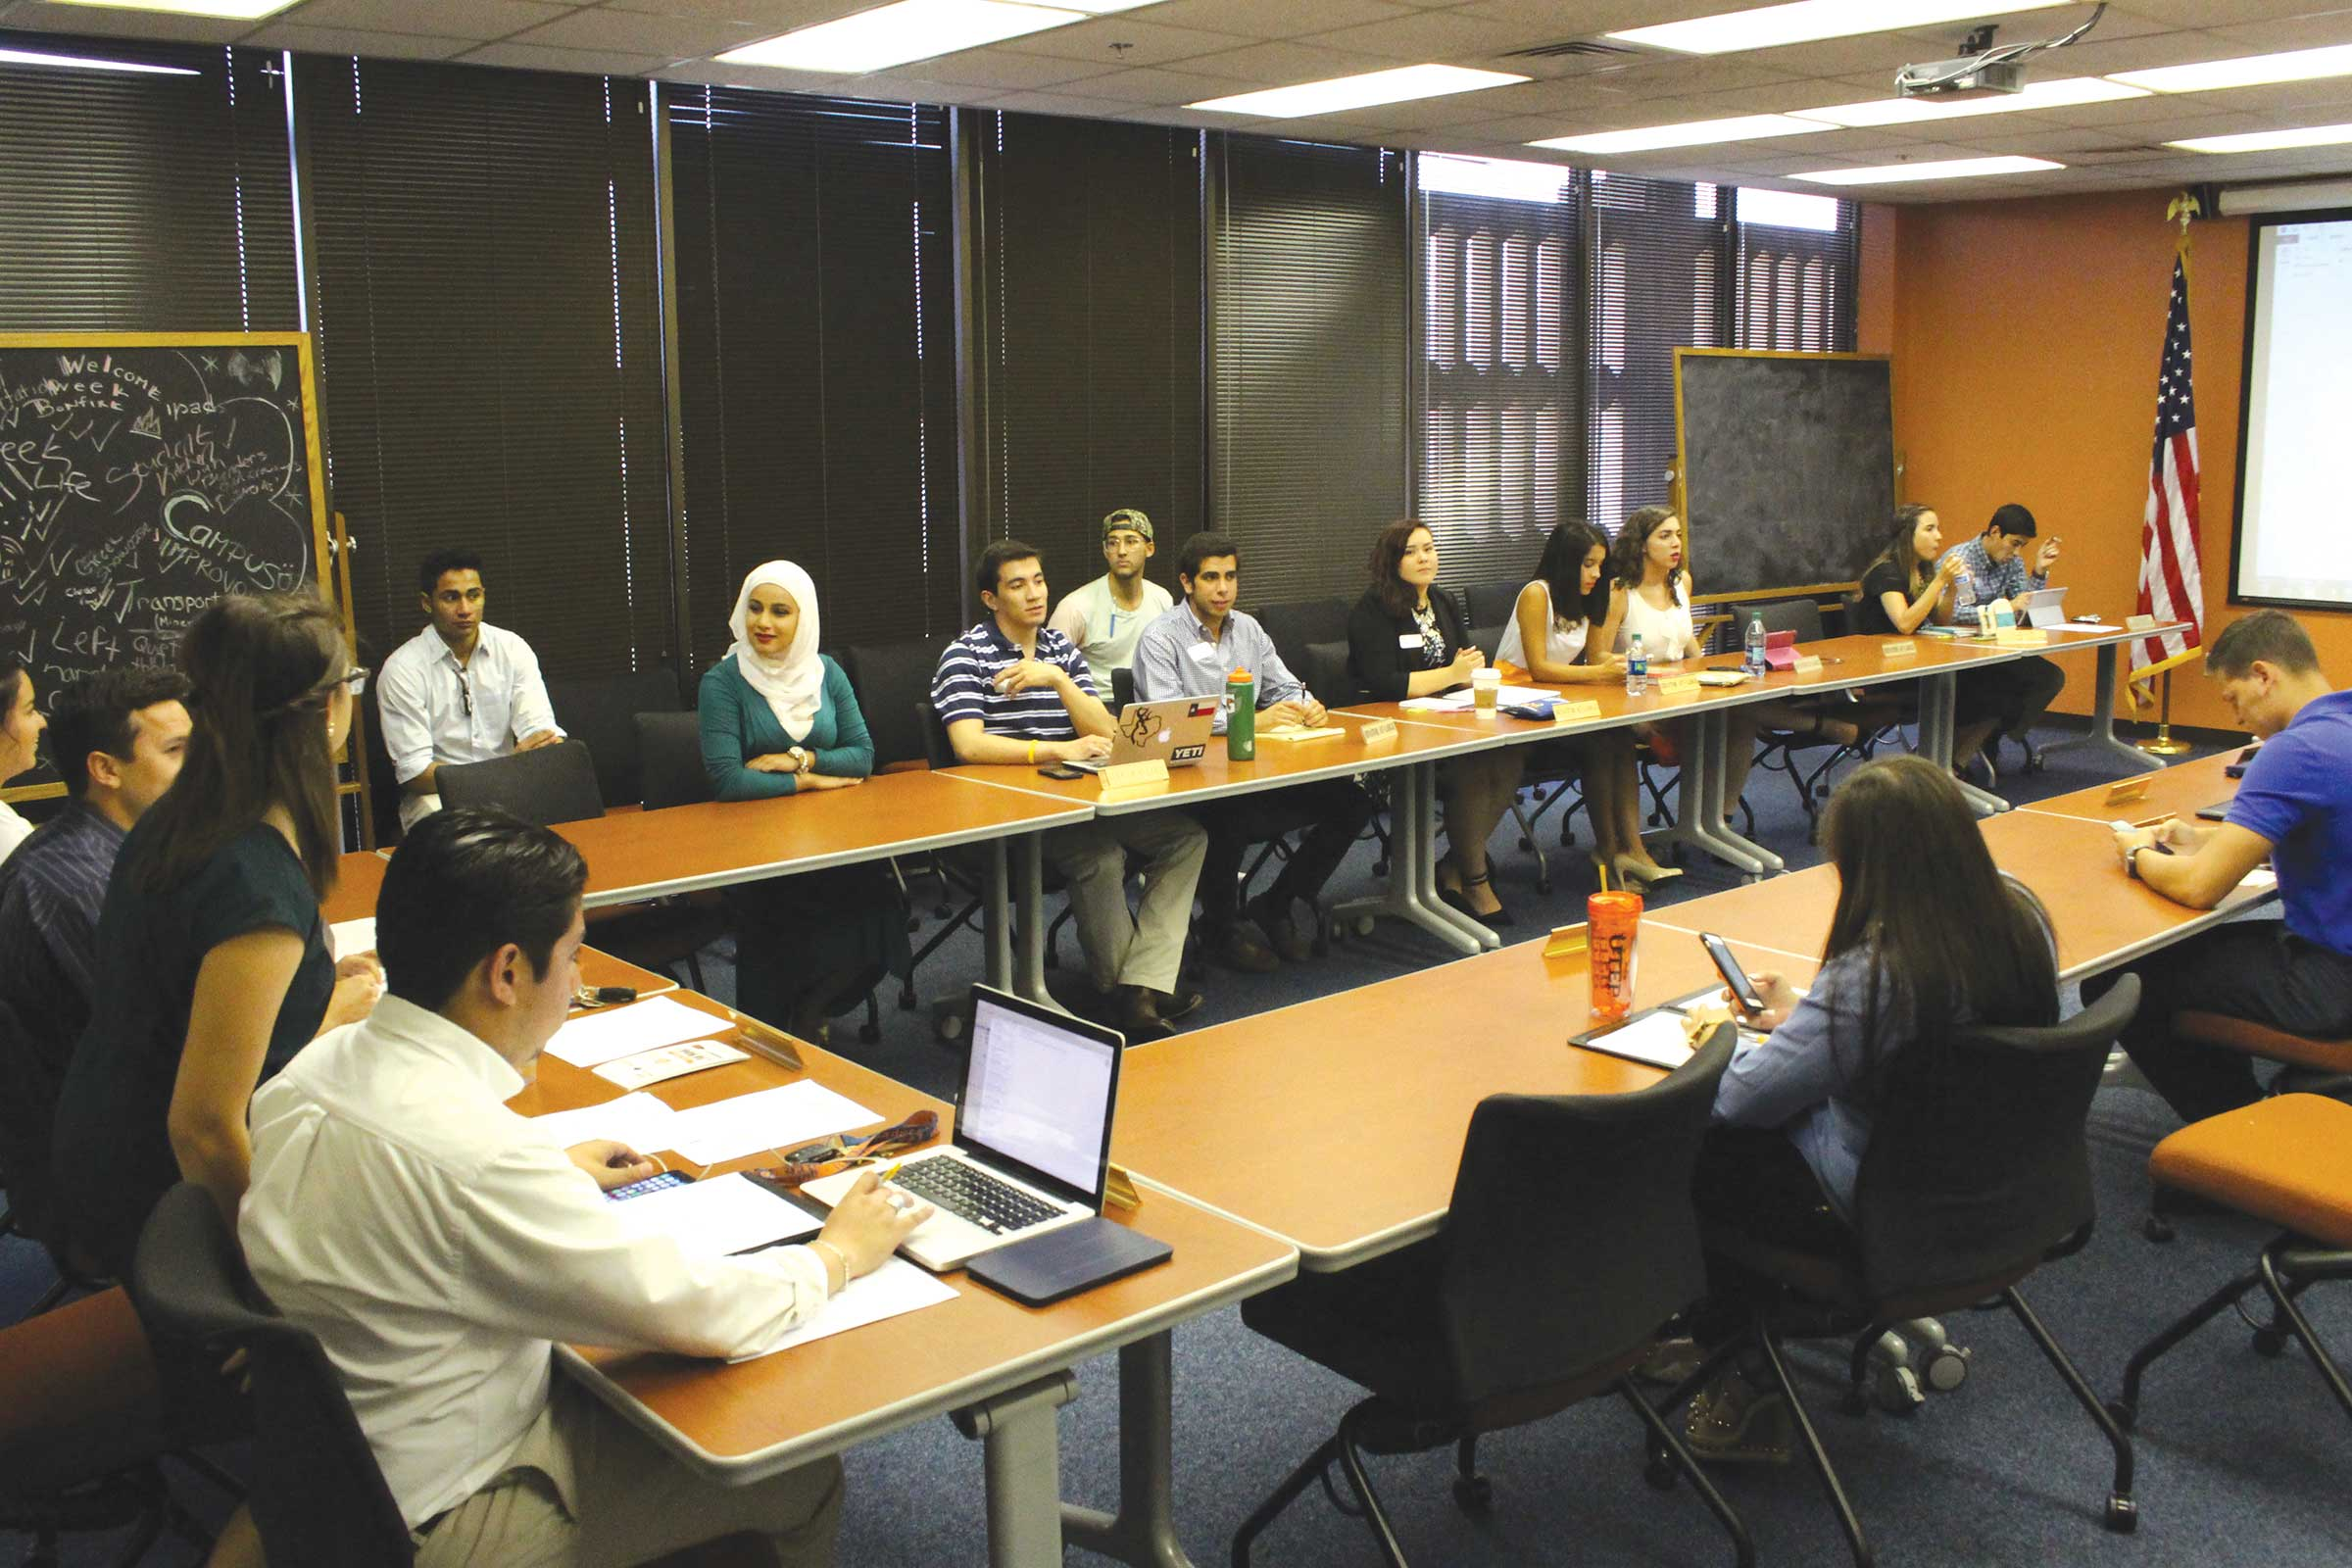 UTEP SGA holds a meeting to discuss issues around the UTEP campus and it's community.